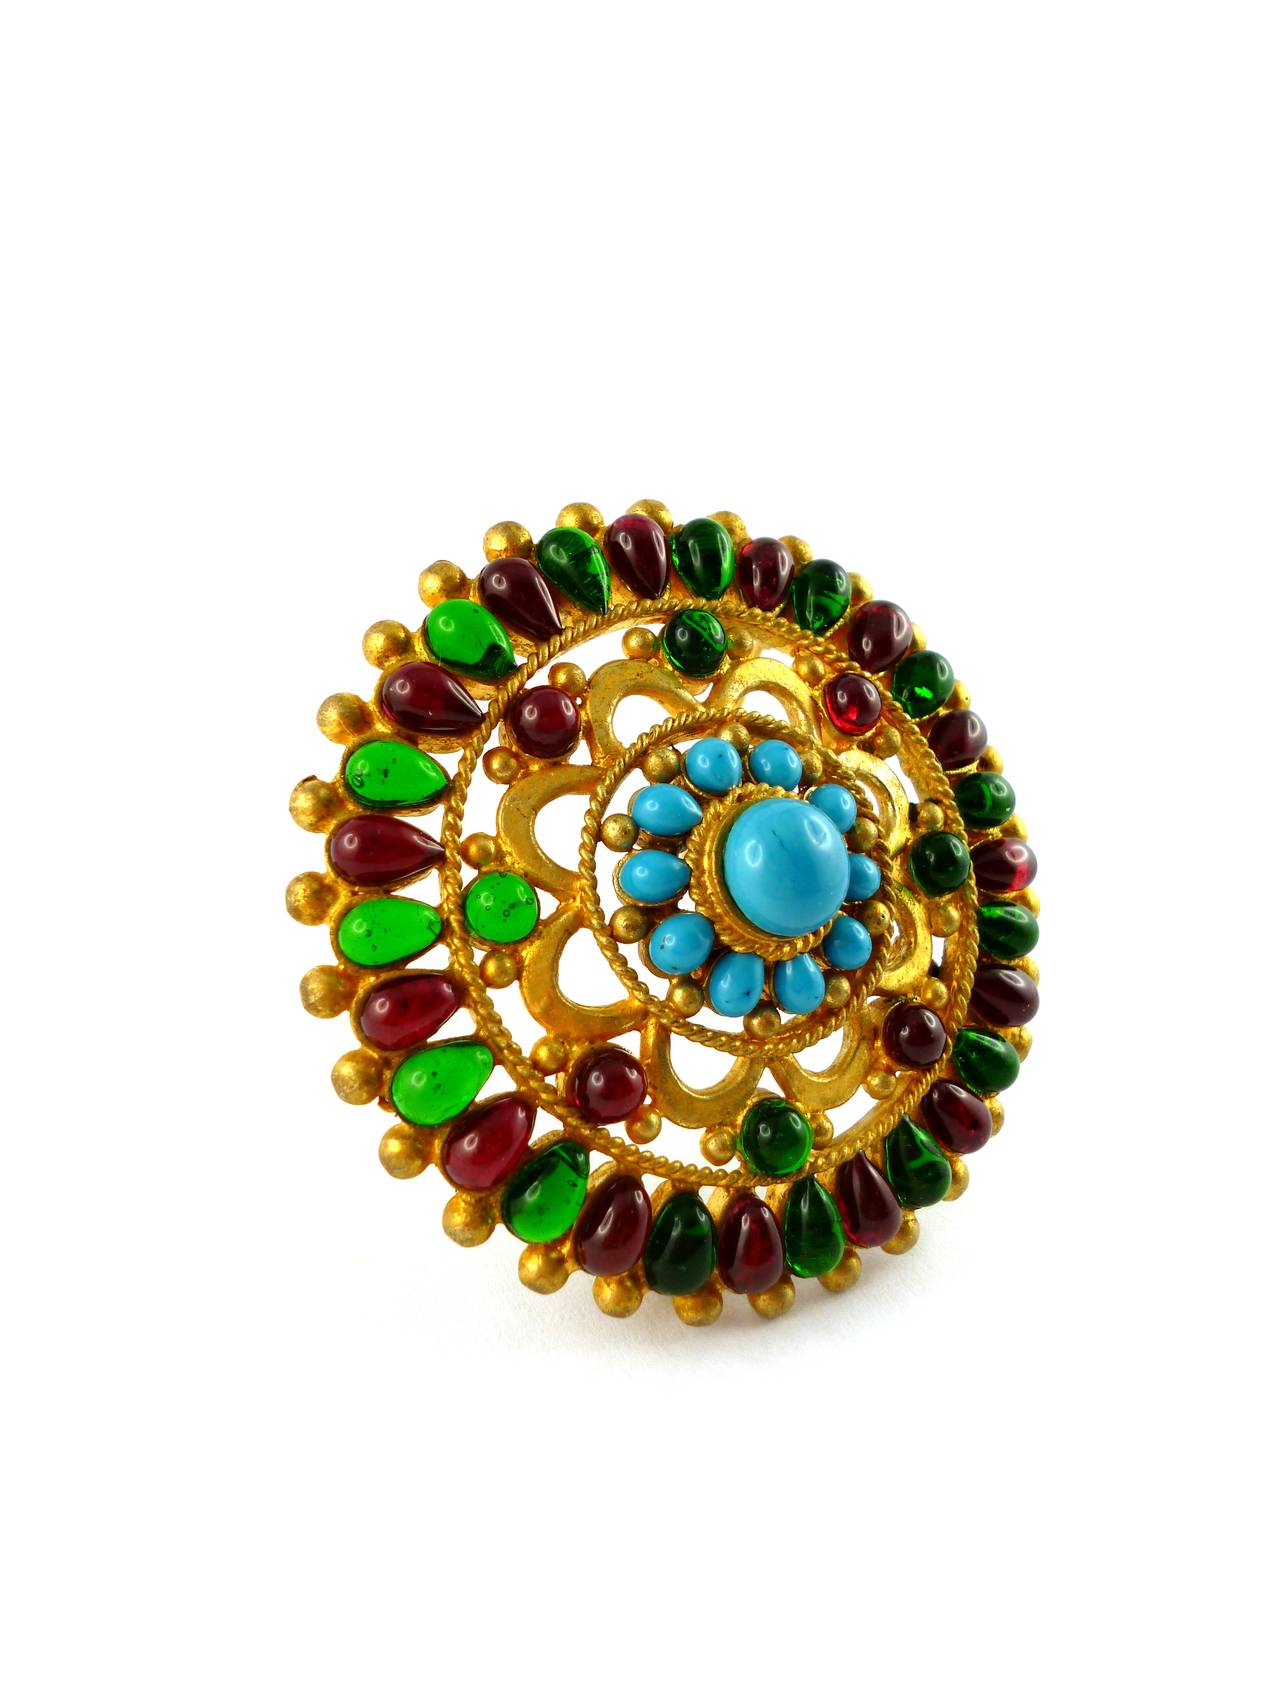 Chanel Massive Gripoix Mughal Brooch Pendant Fall 1993 In Good Condition For Sale In French Riviera, Cote d'Azur